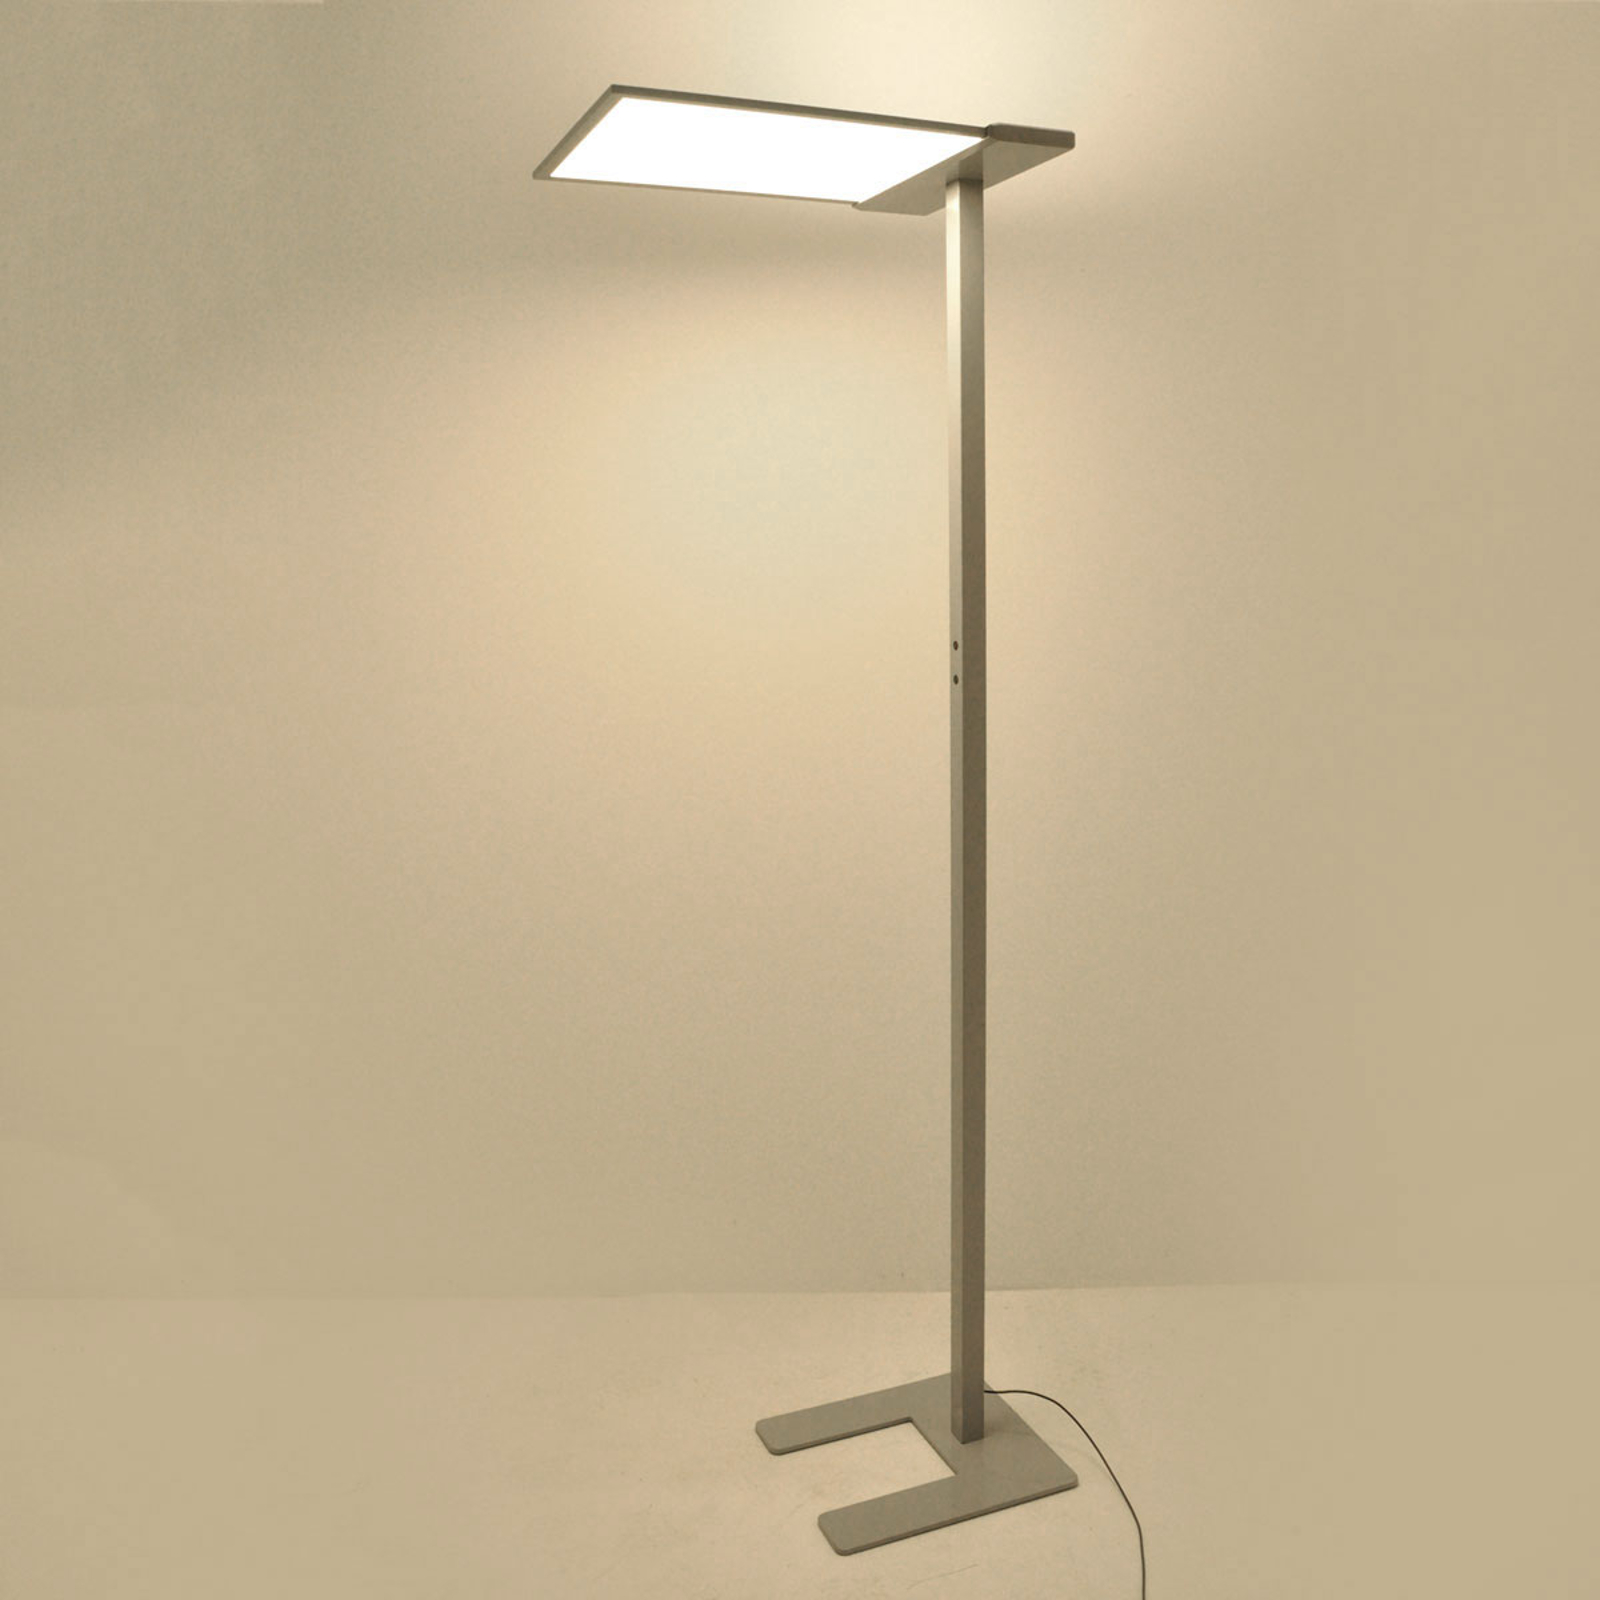 LED-Office-Stehlampe Esmael, 36W + 20W Dimmer